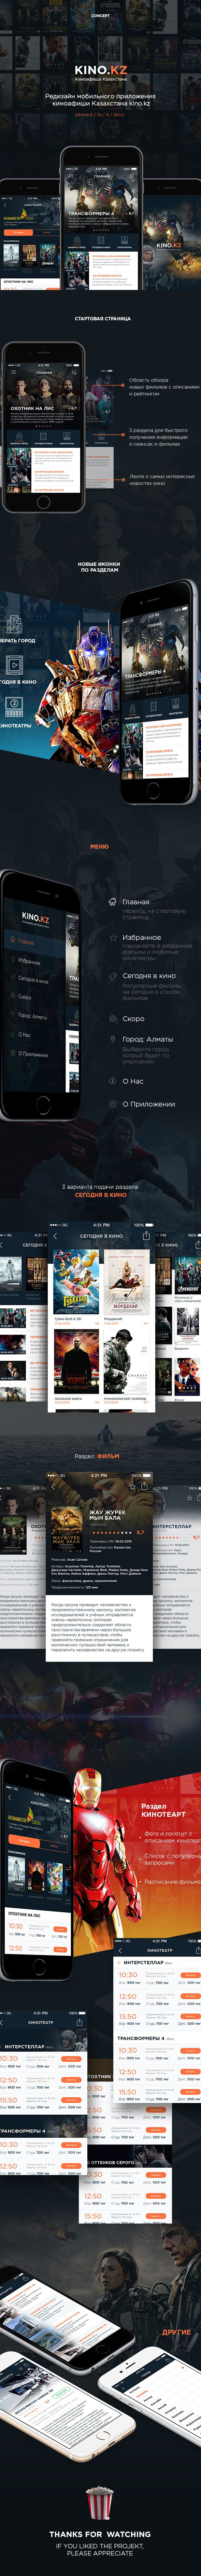 "Concept. Movie App Redesign for service ""kino.kz"" on Behance"